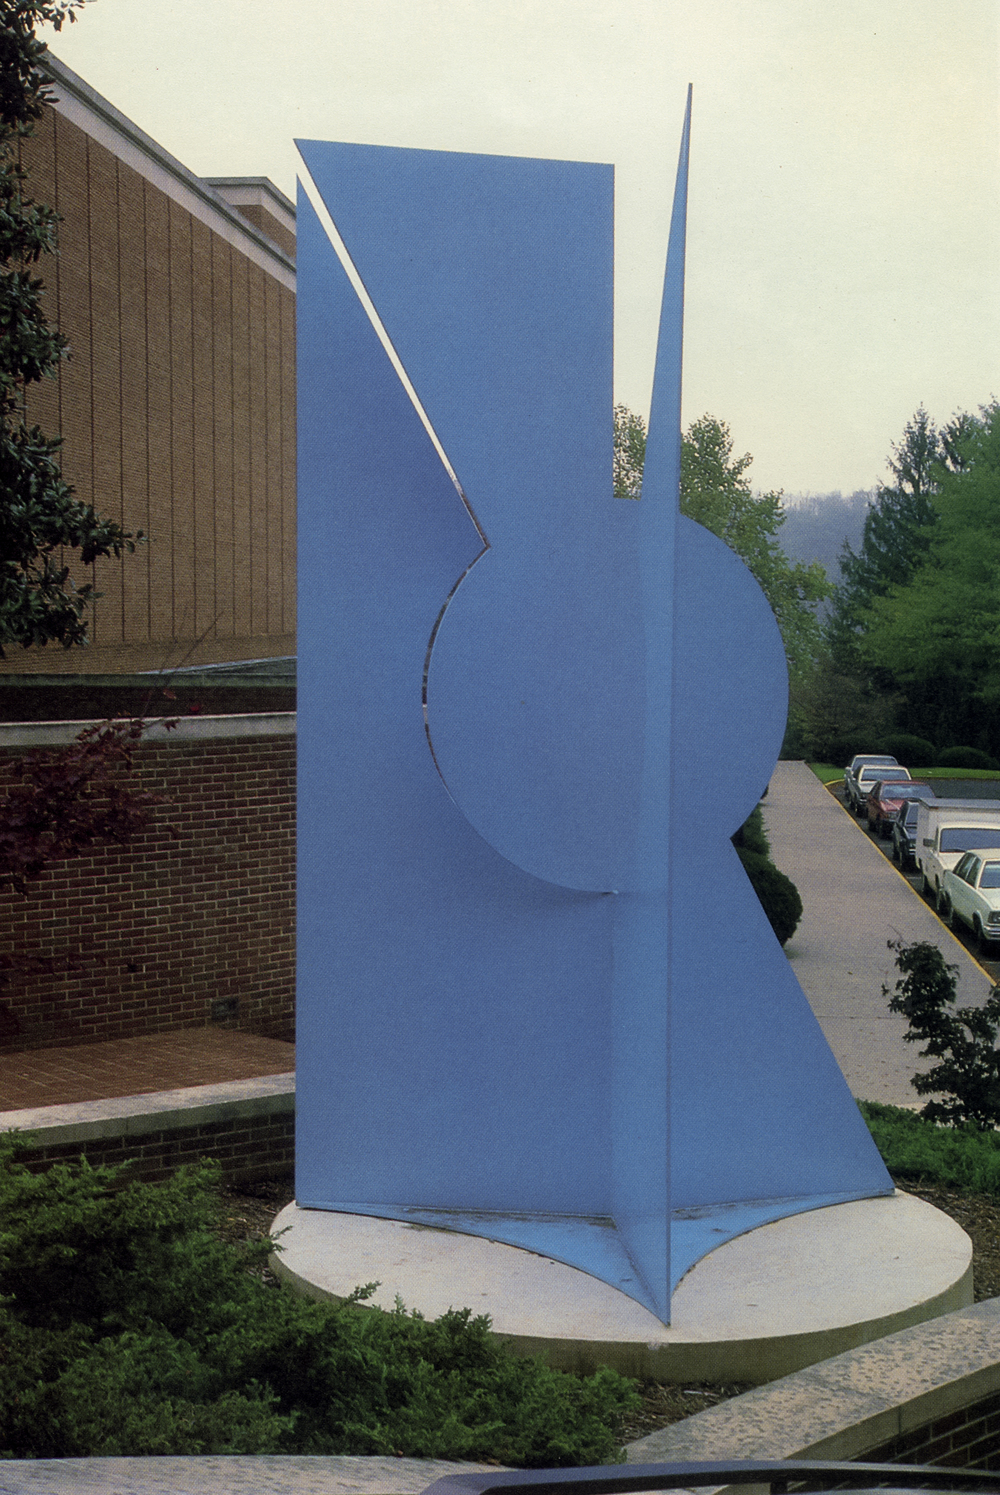 Radford University, Radford, Virginia; 1983.  M.H. XXII.  16'x8'x8'.